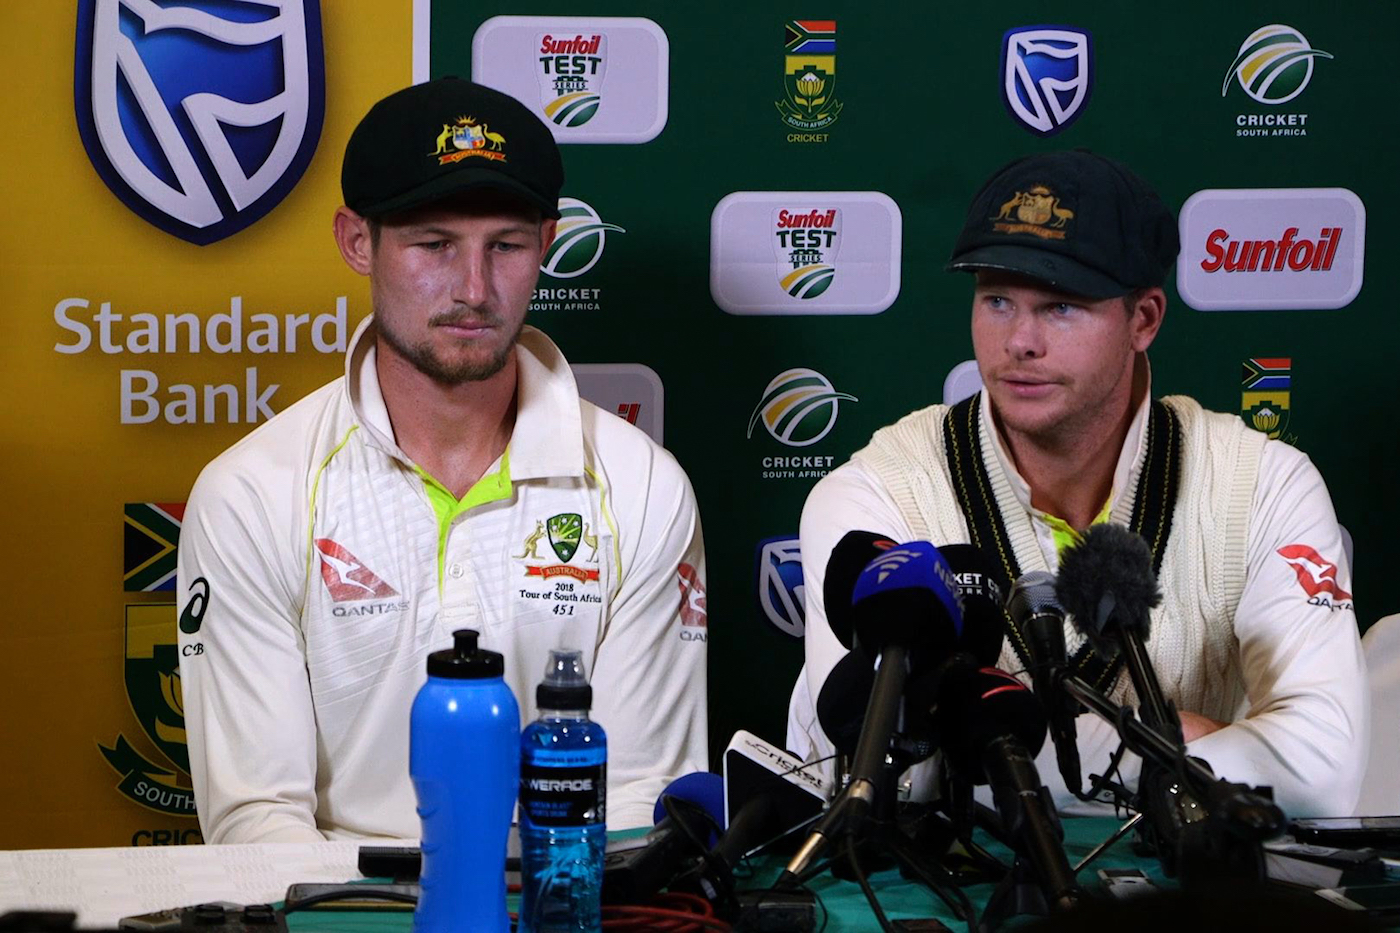 Australian Cricketers Unions Calls on Steven Smith, David Warner and Cameron Bancroft Bans to be Reduced 1